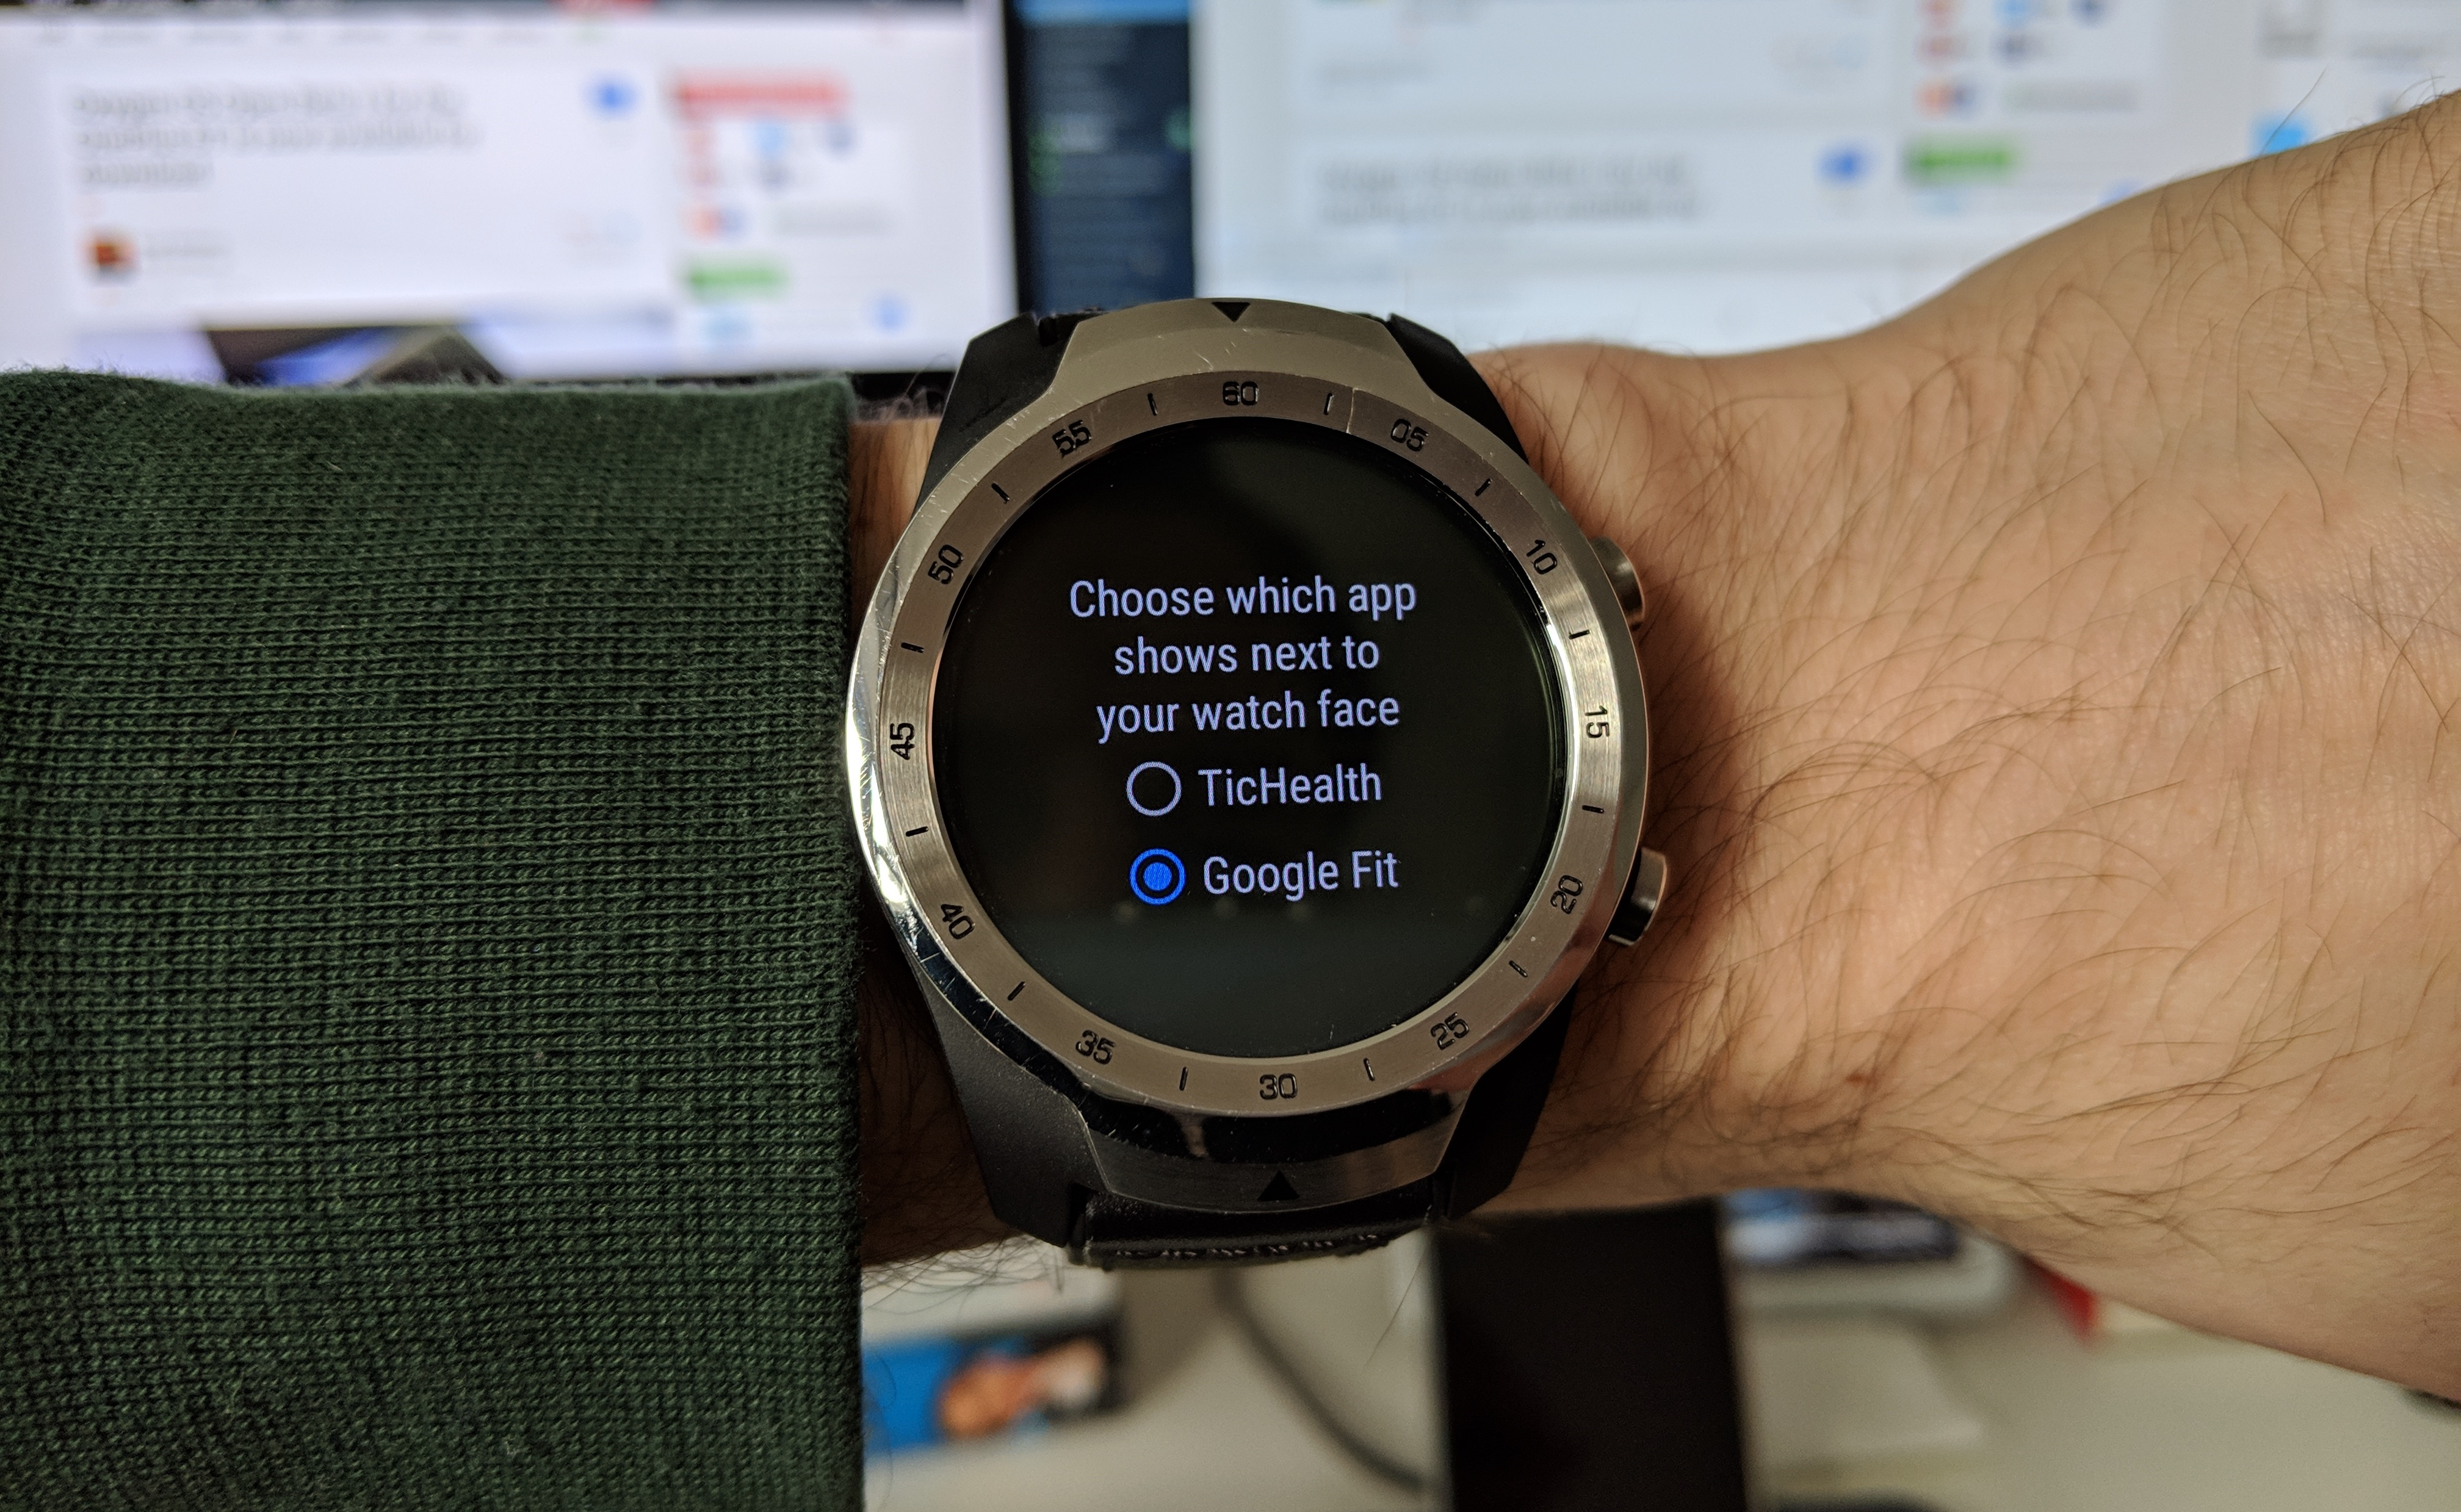 TicWatch users can now set Google Fit as their default left